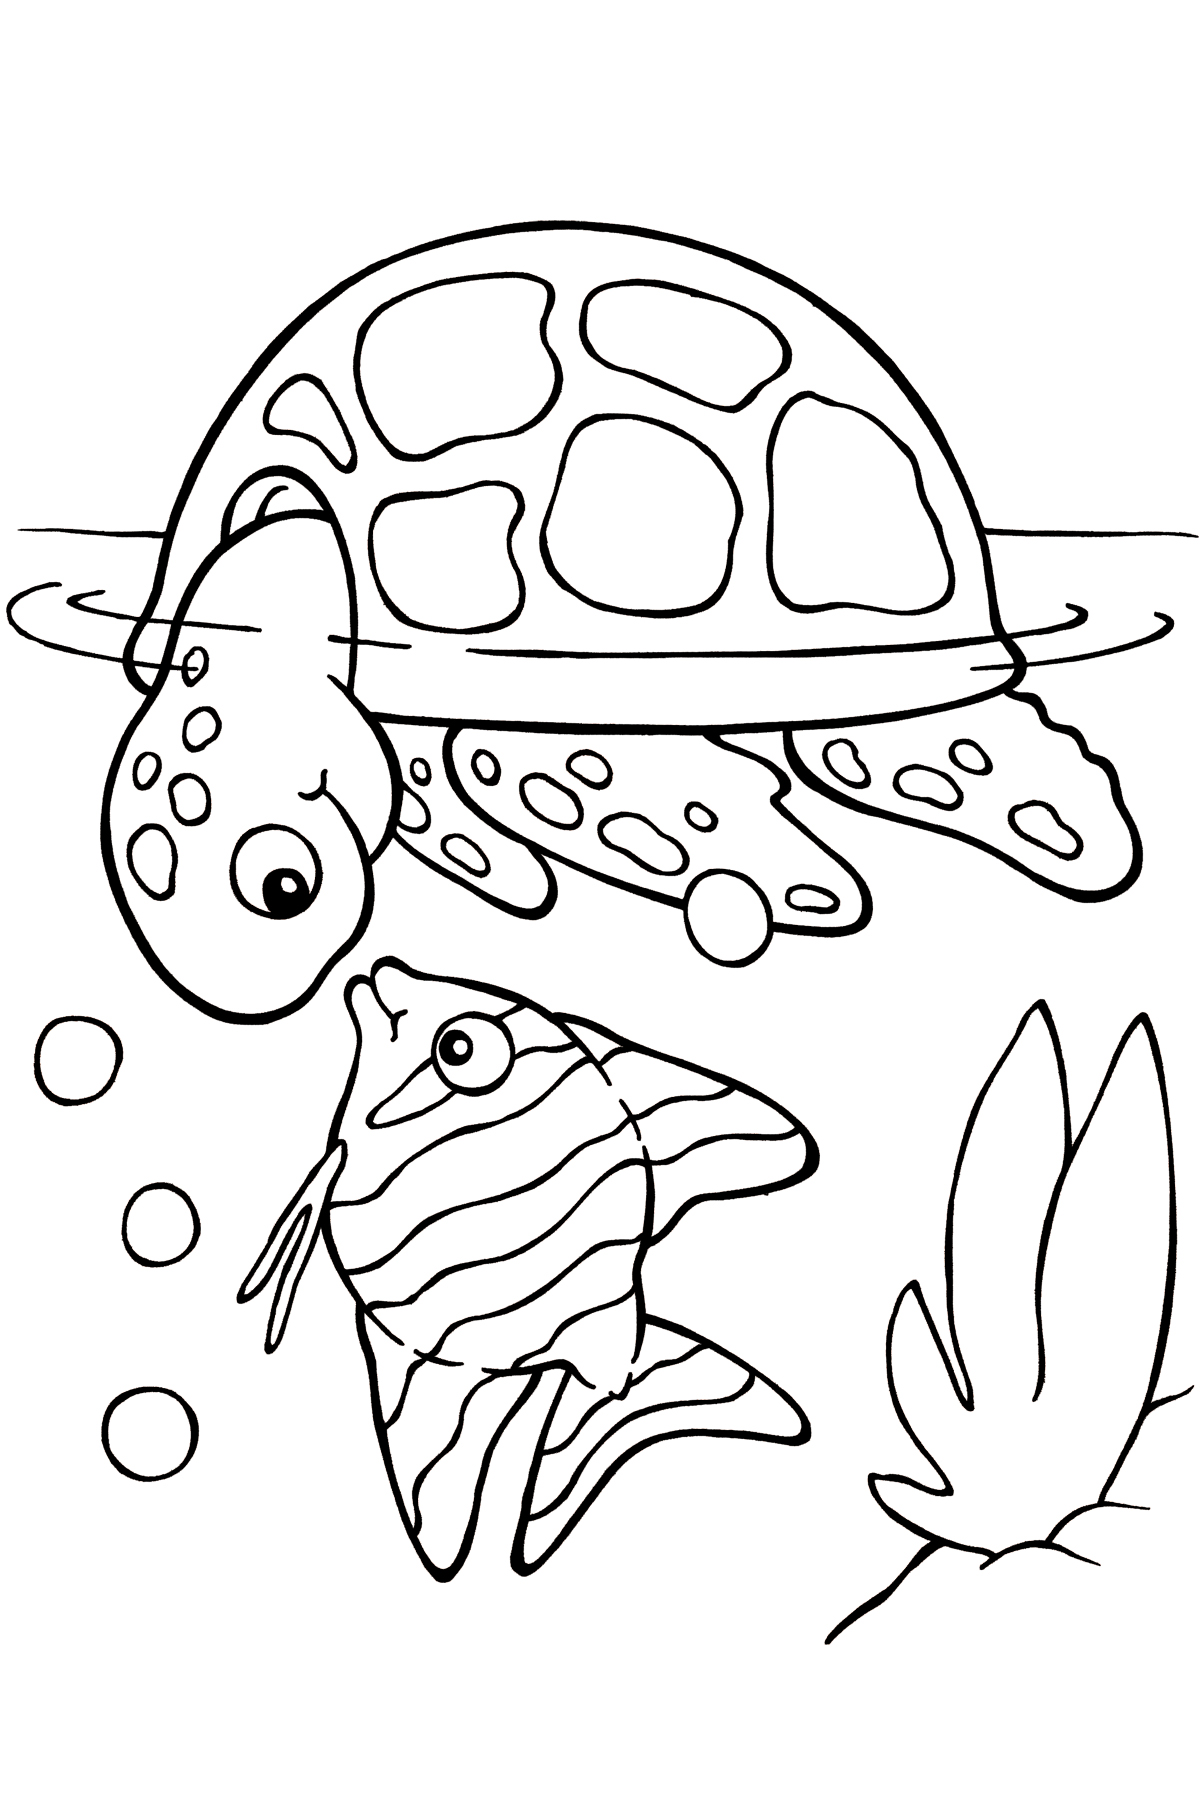 coloring page turtle sea turtle coloring pages to download and print for free